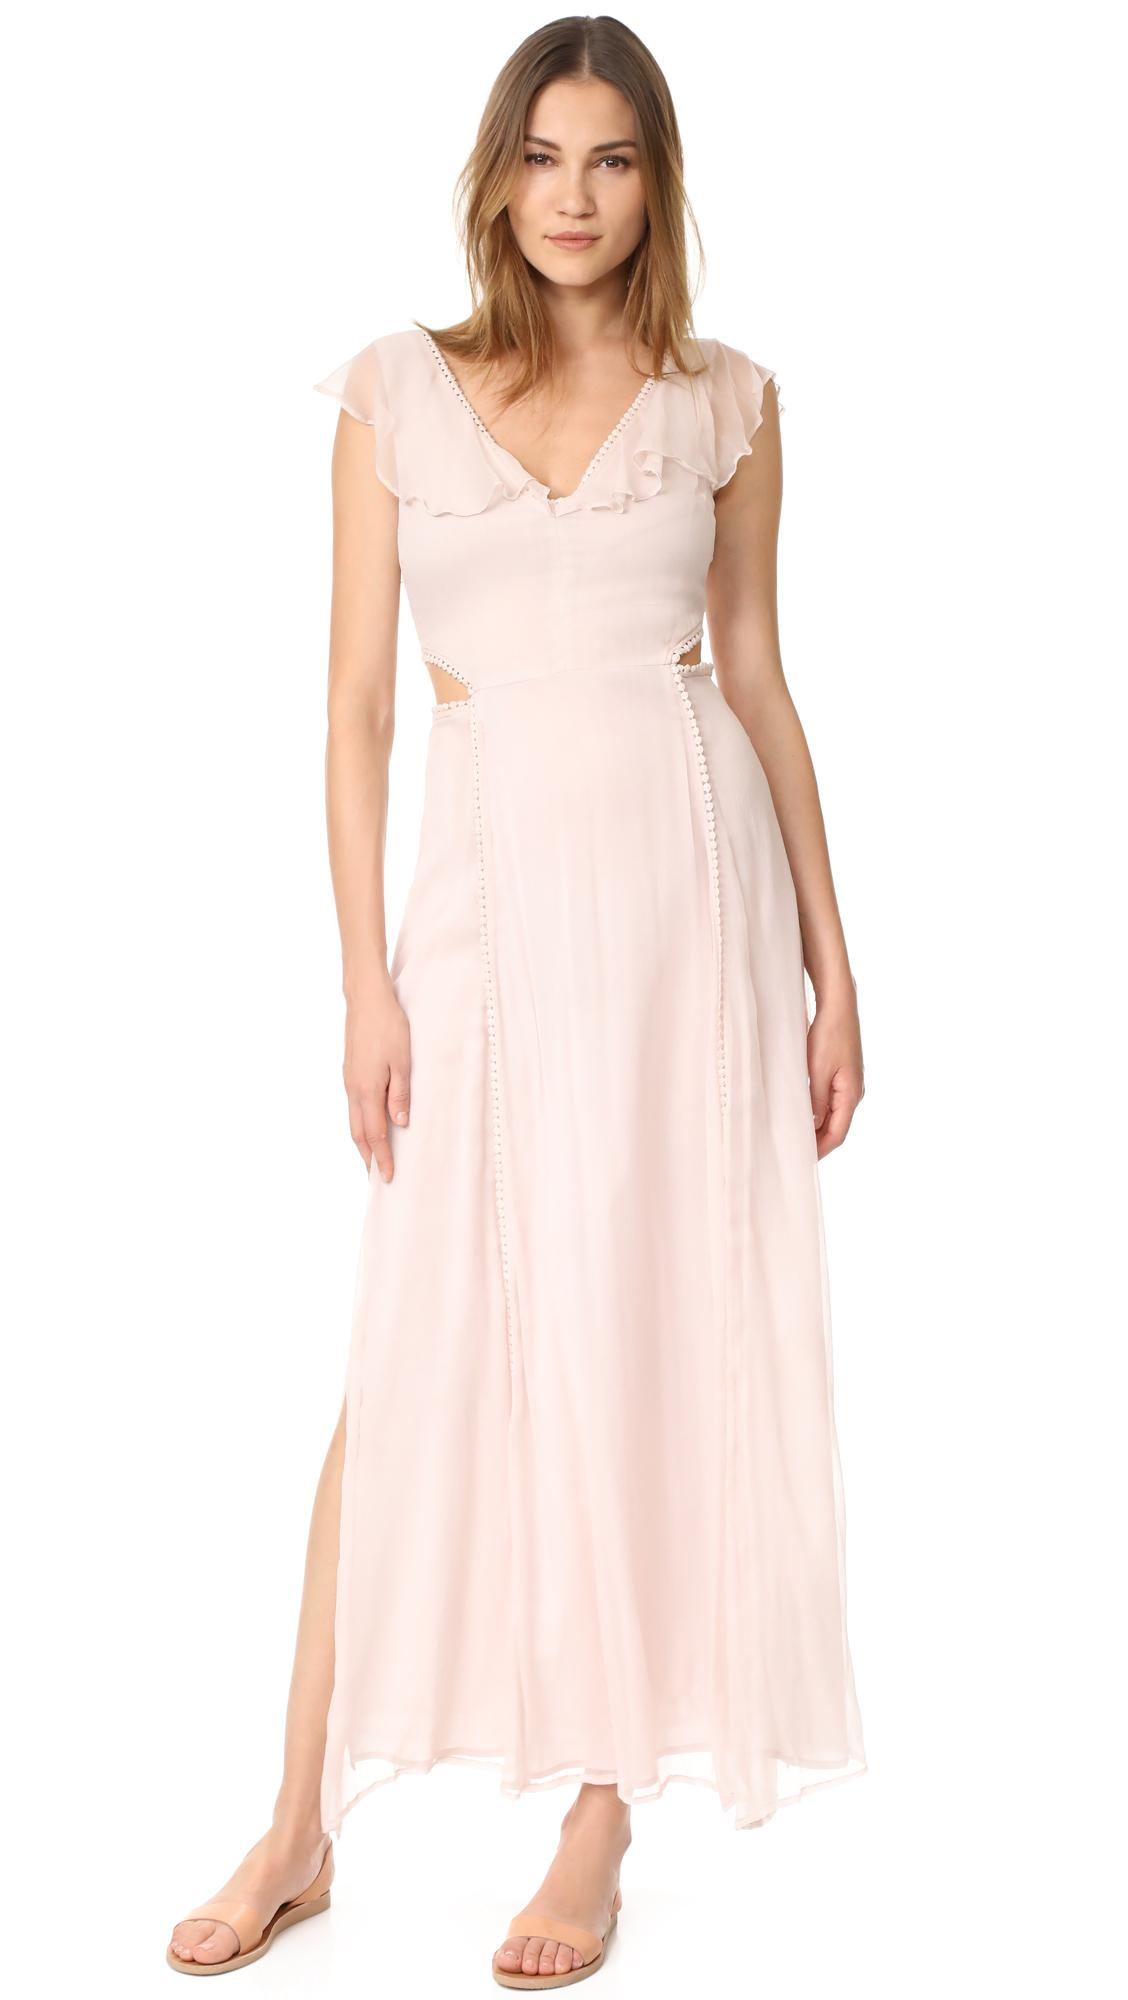 52e1f27f1171c Cleobella Auden Maxi Dress in Pink - Lyst